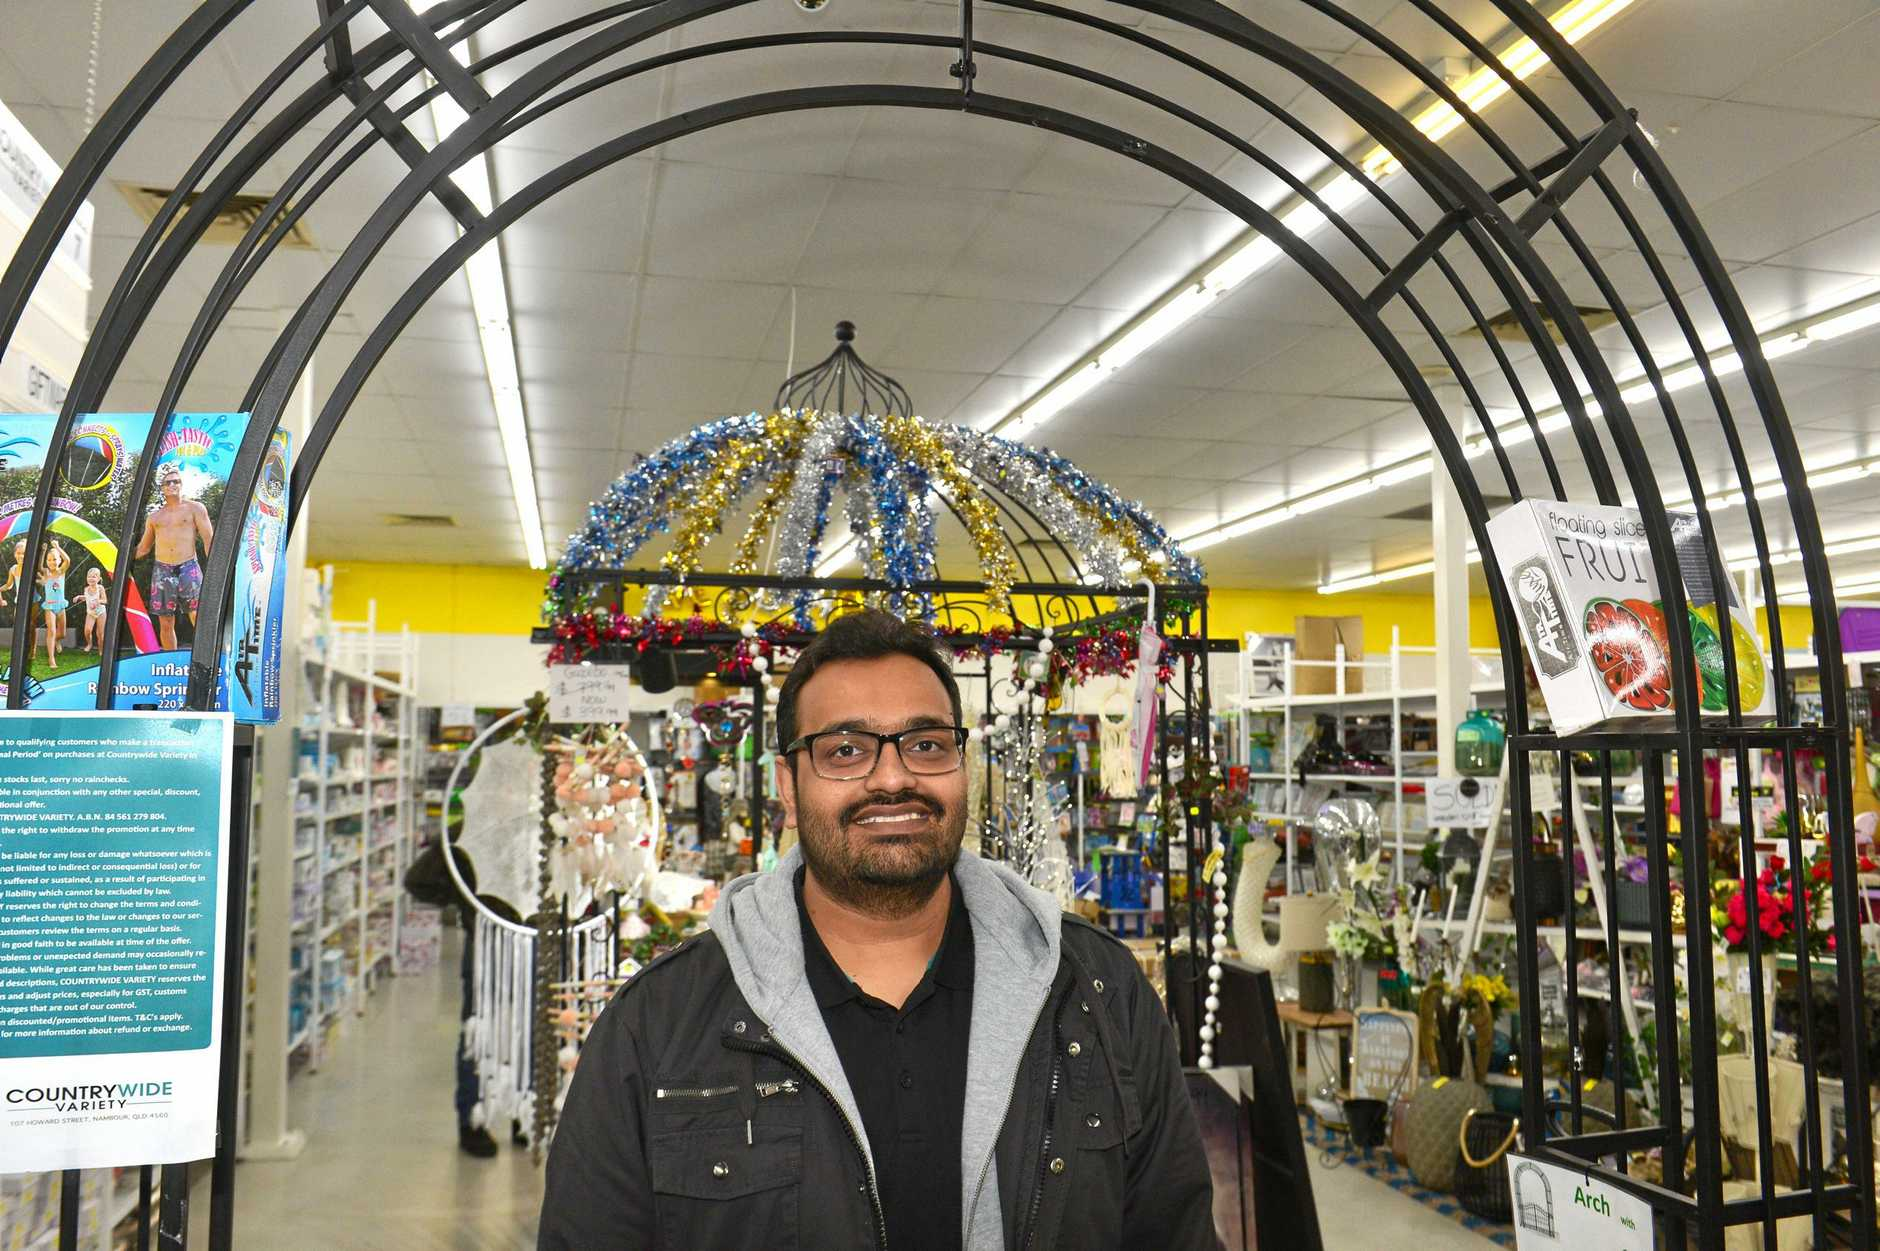 BYE: Store owner Uttam Raiyani is closing his Nambour business.